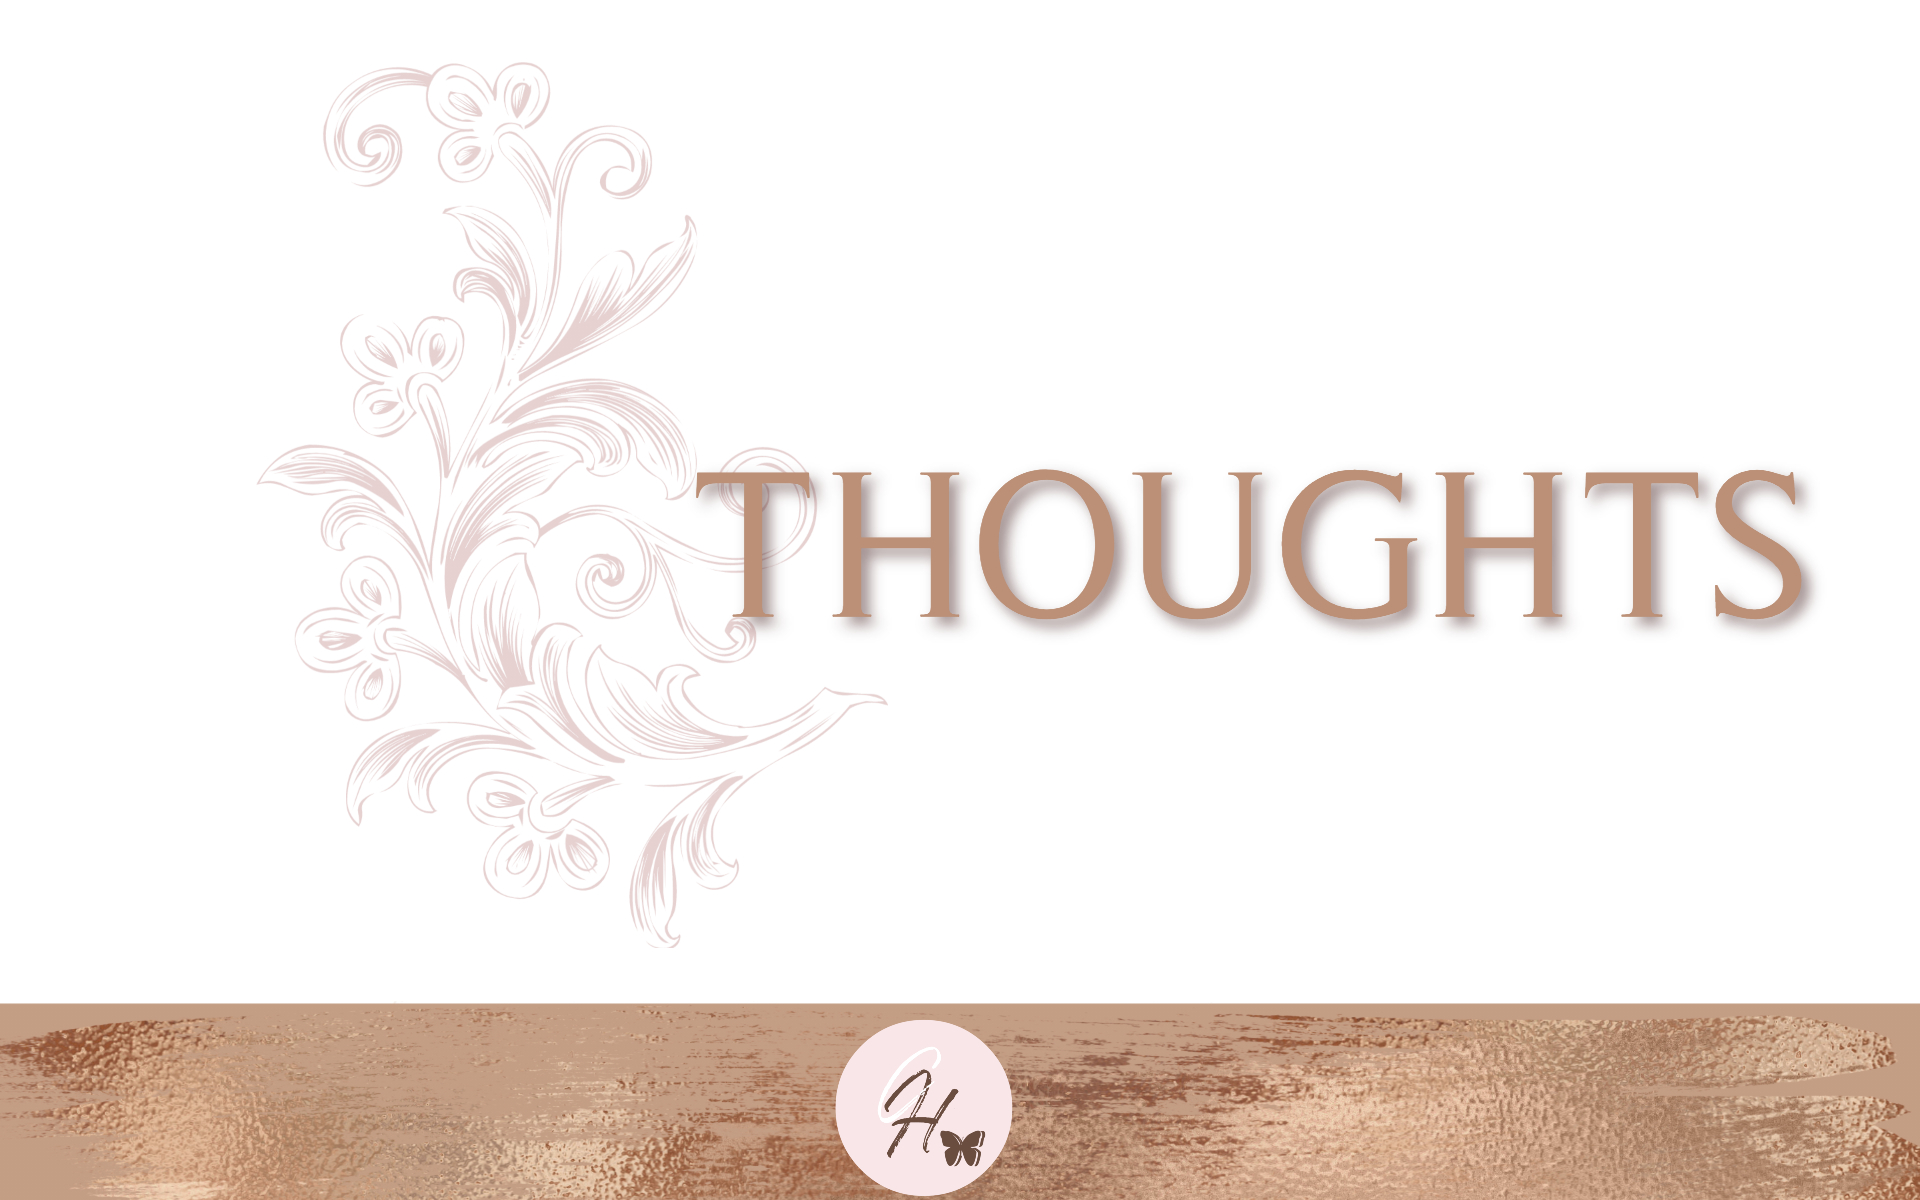 Thoughts - Bible Study Guide